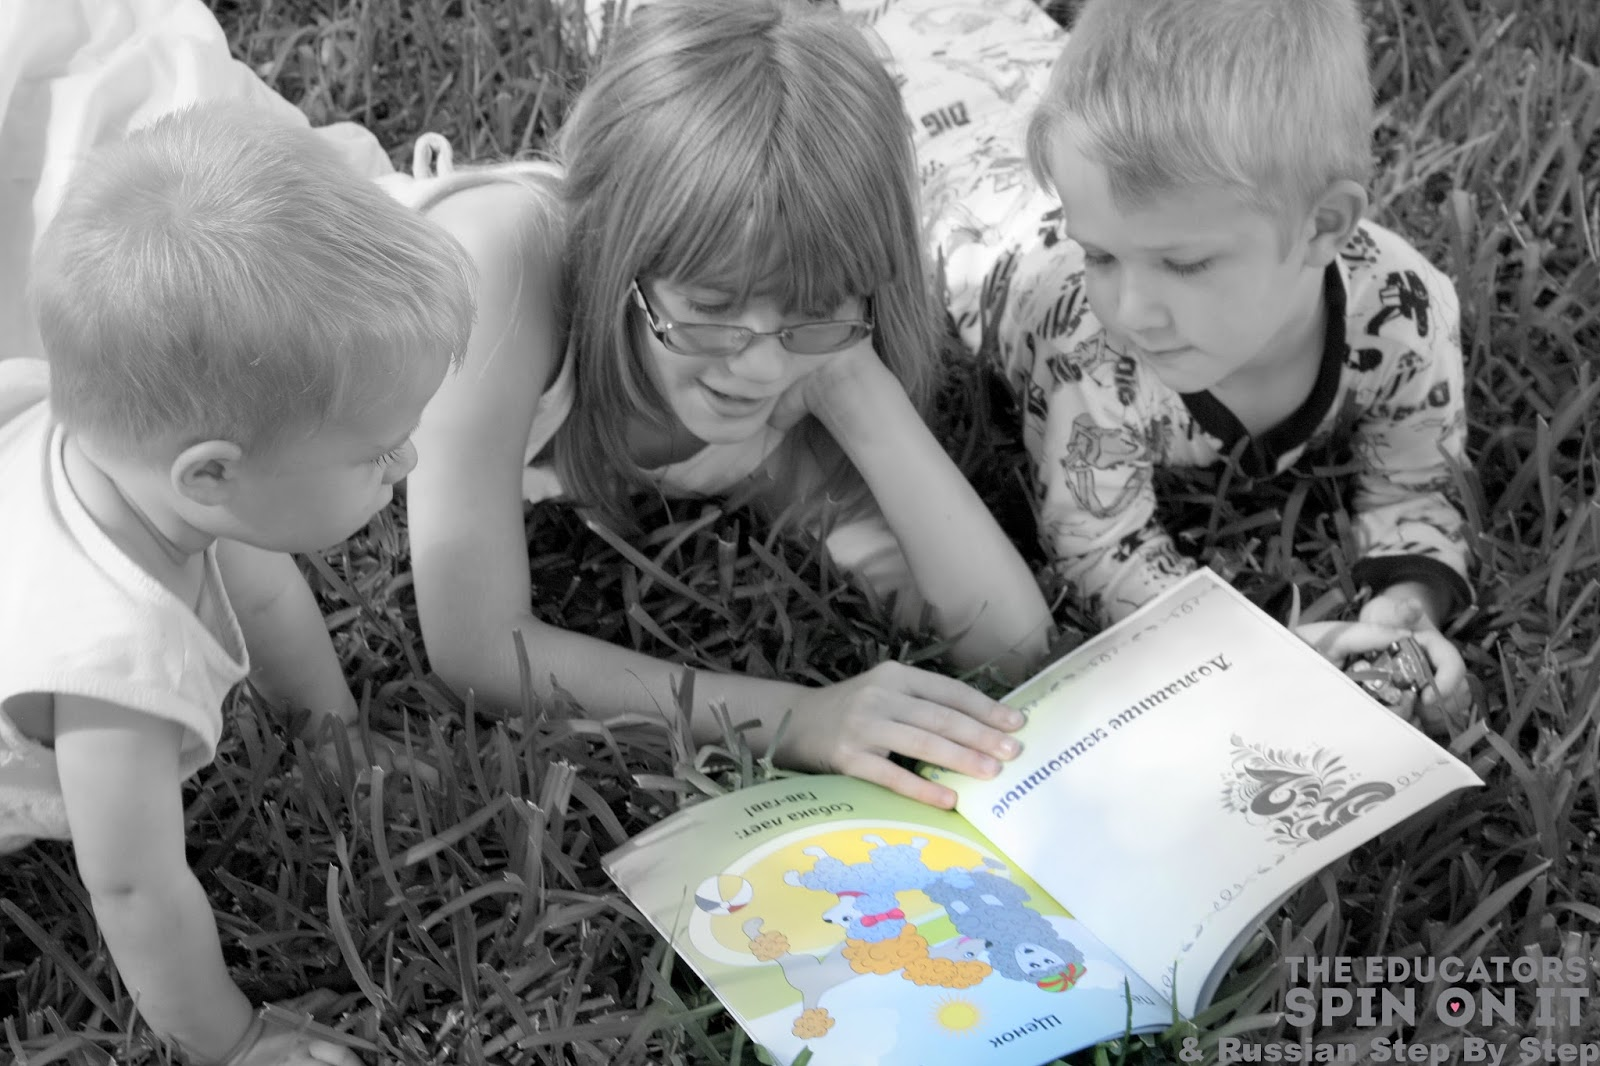 Children reading Russian Step By Step curriculum #sponsored